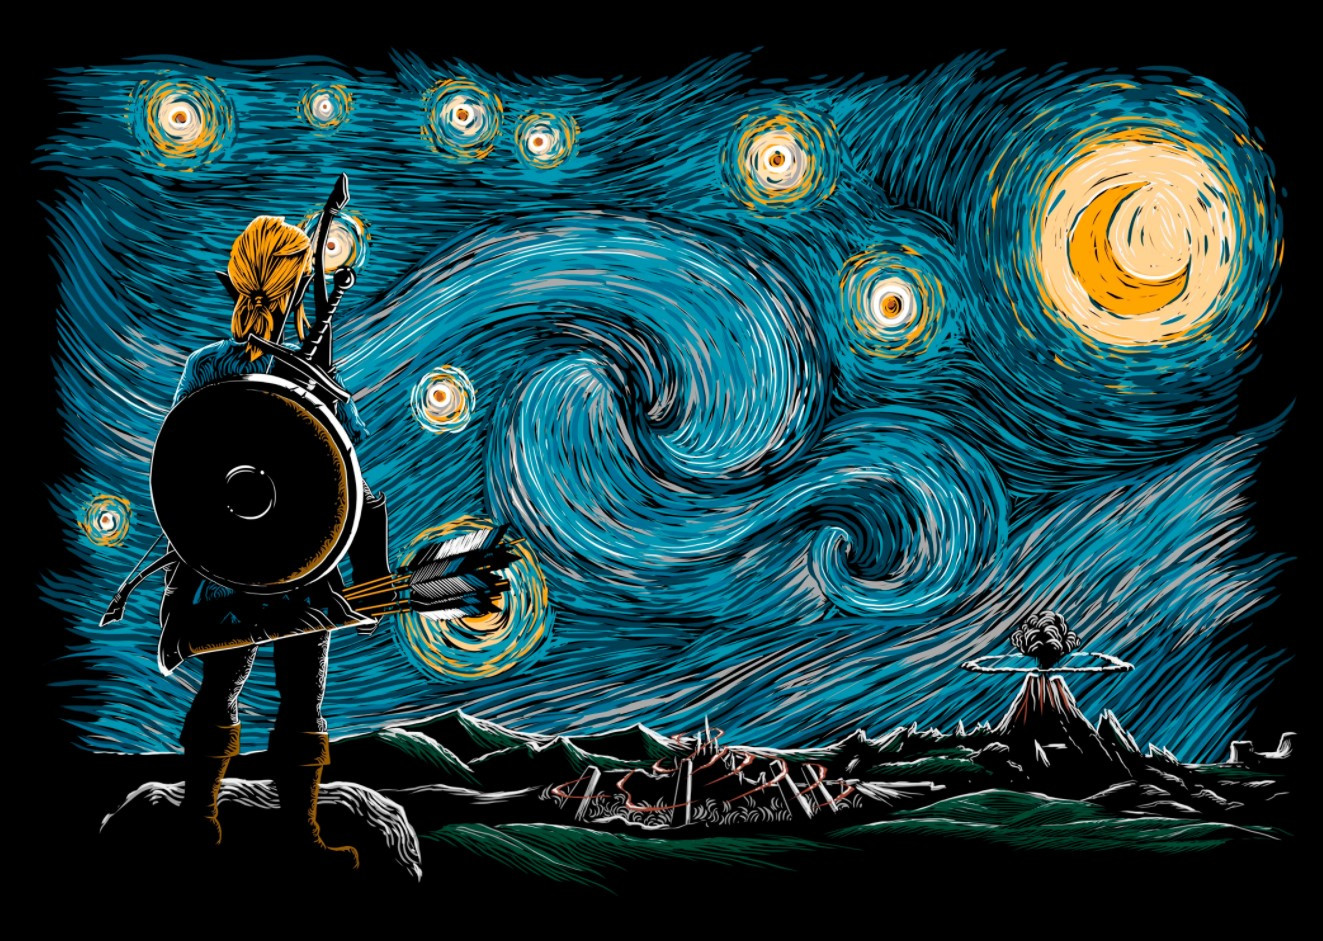 Legend of Zelda's Link in style of Van Gogh picture